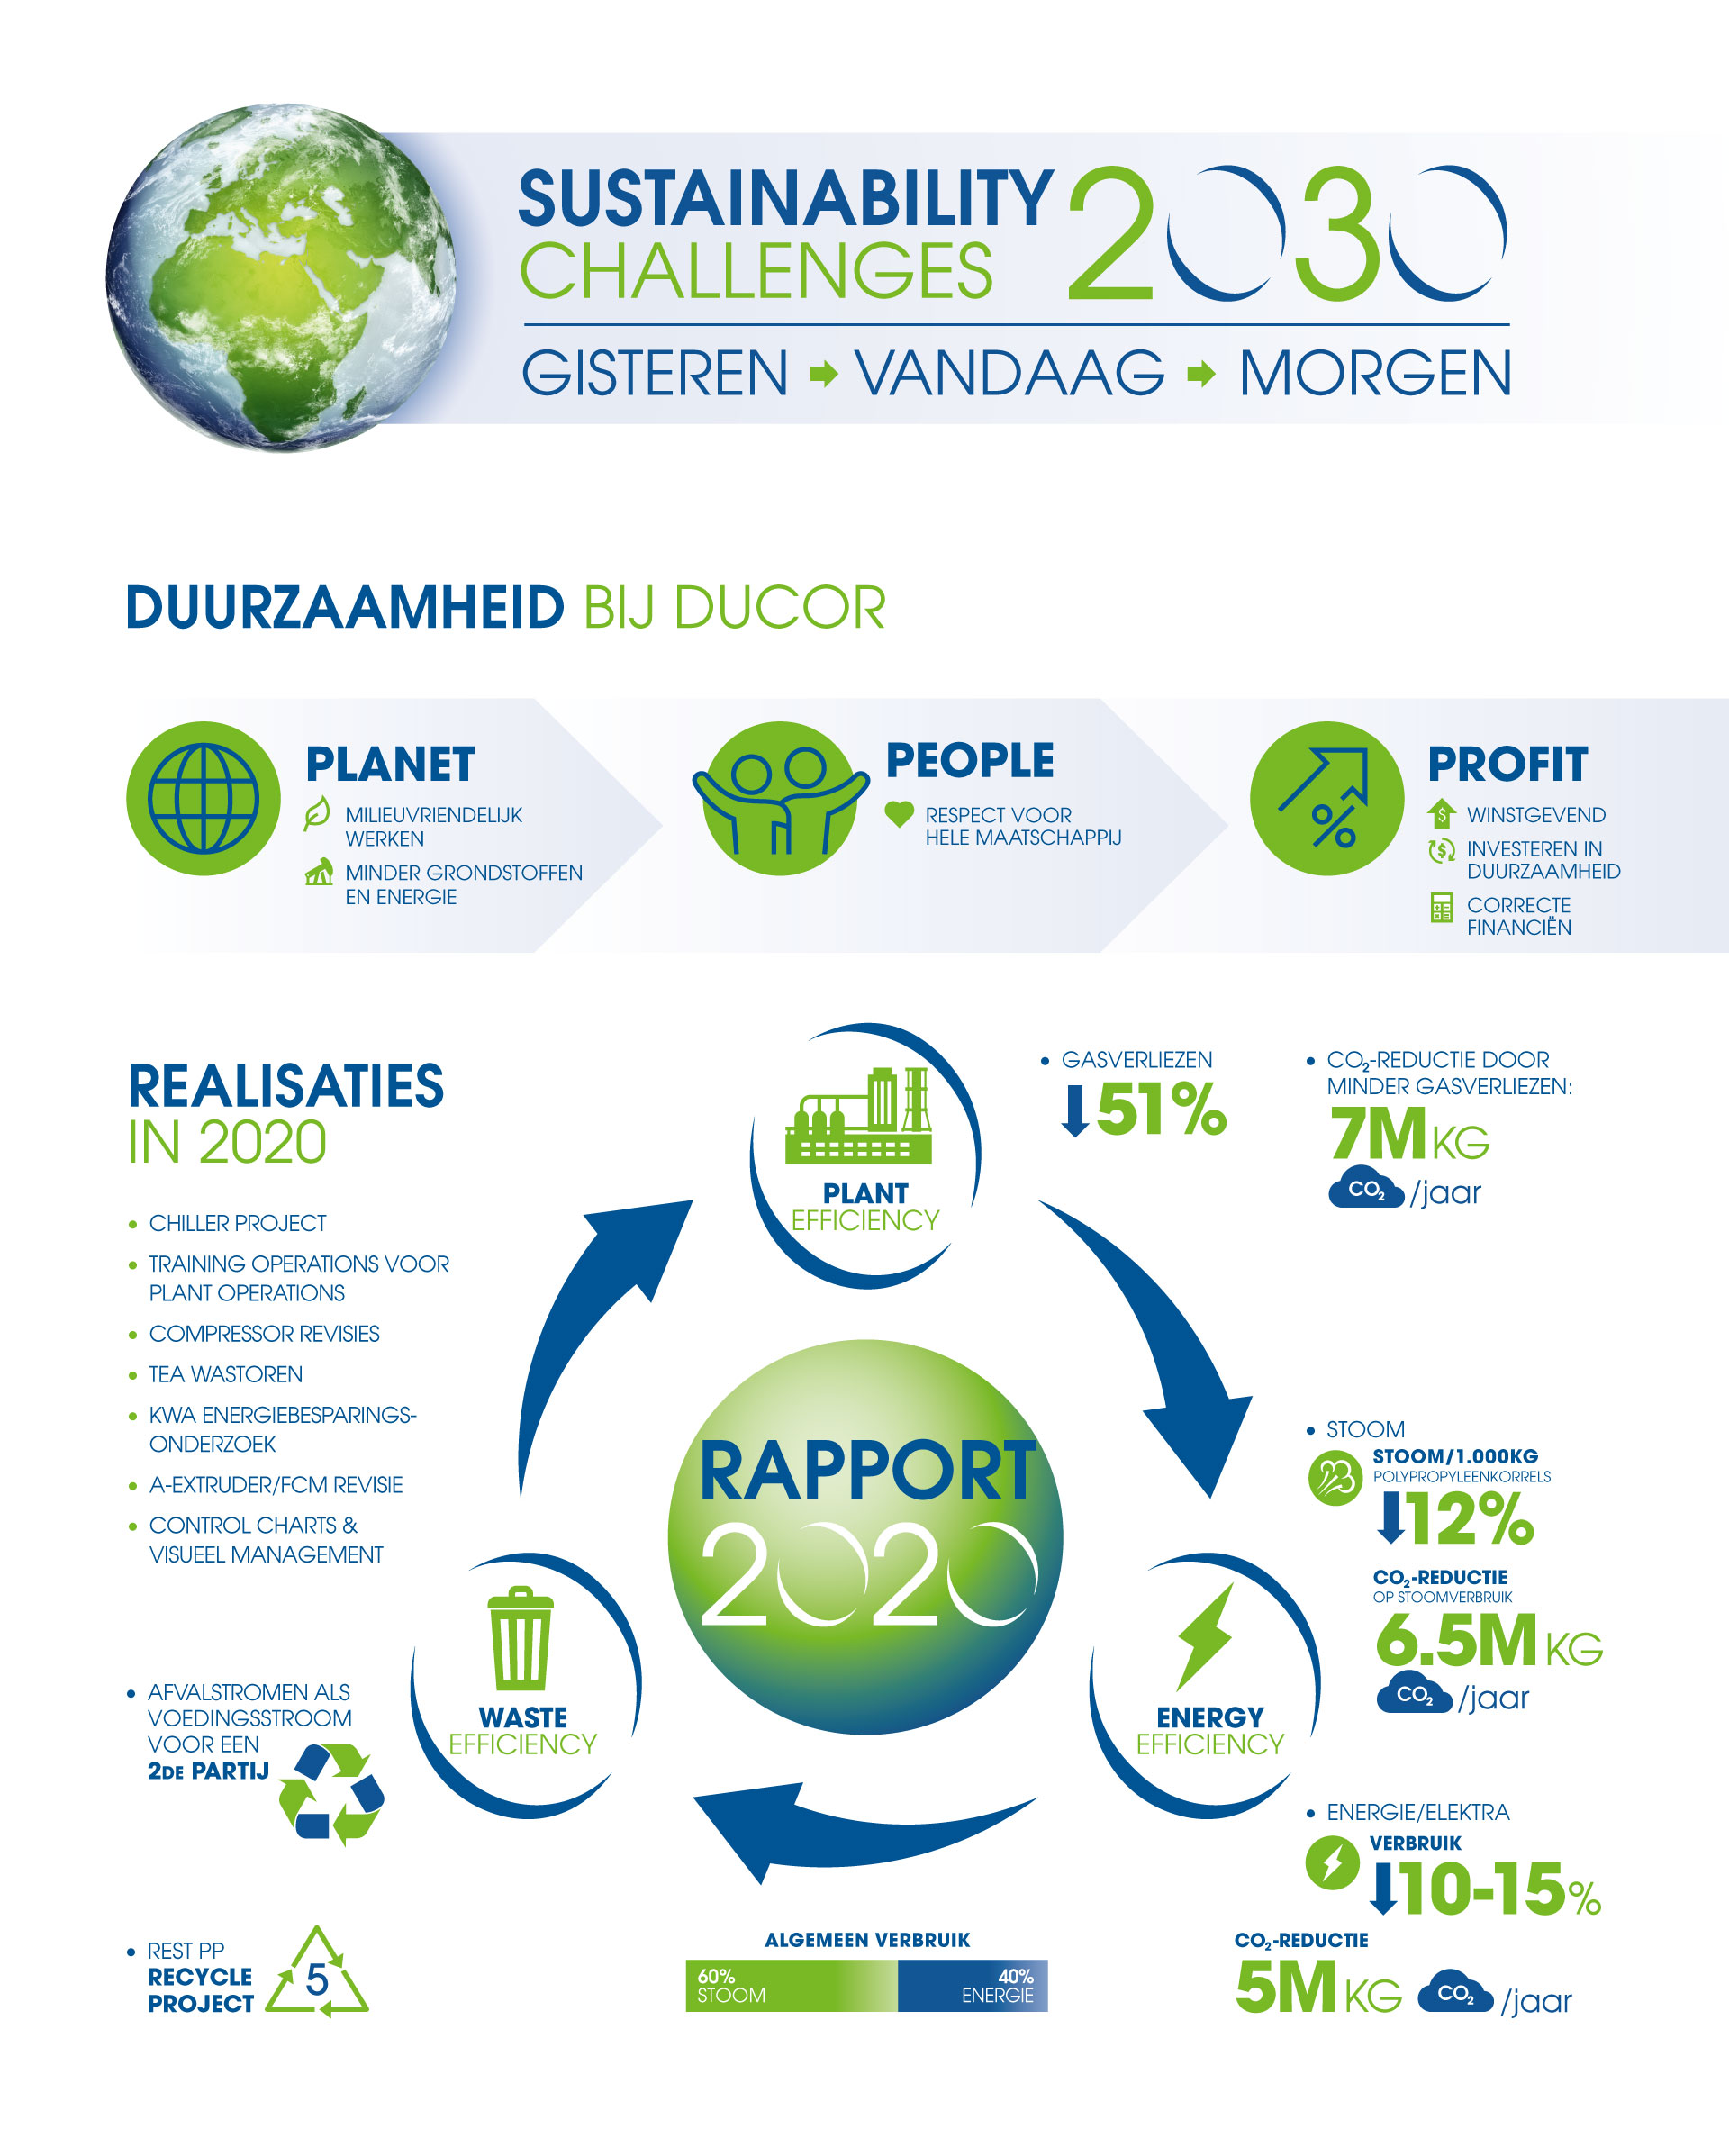 ducor-sustainability-challenges-infographic-nl